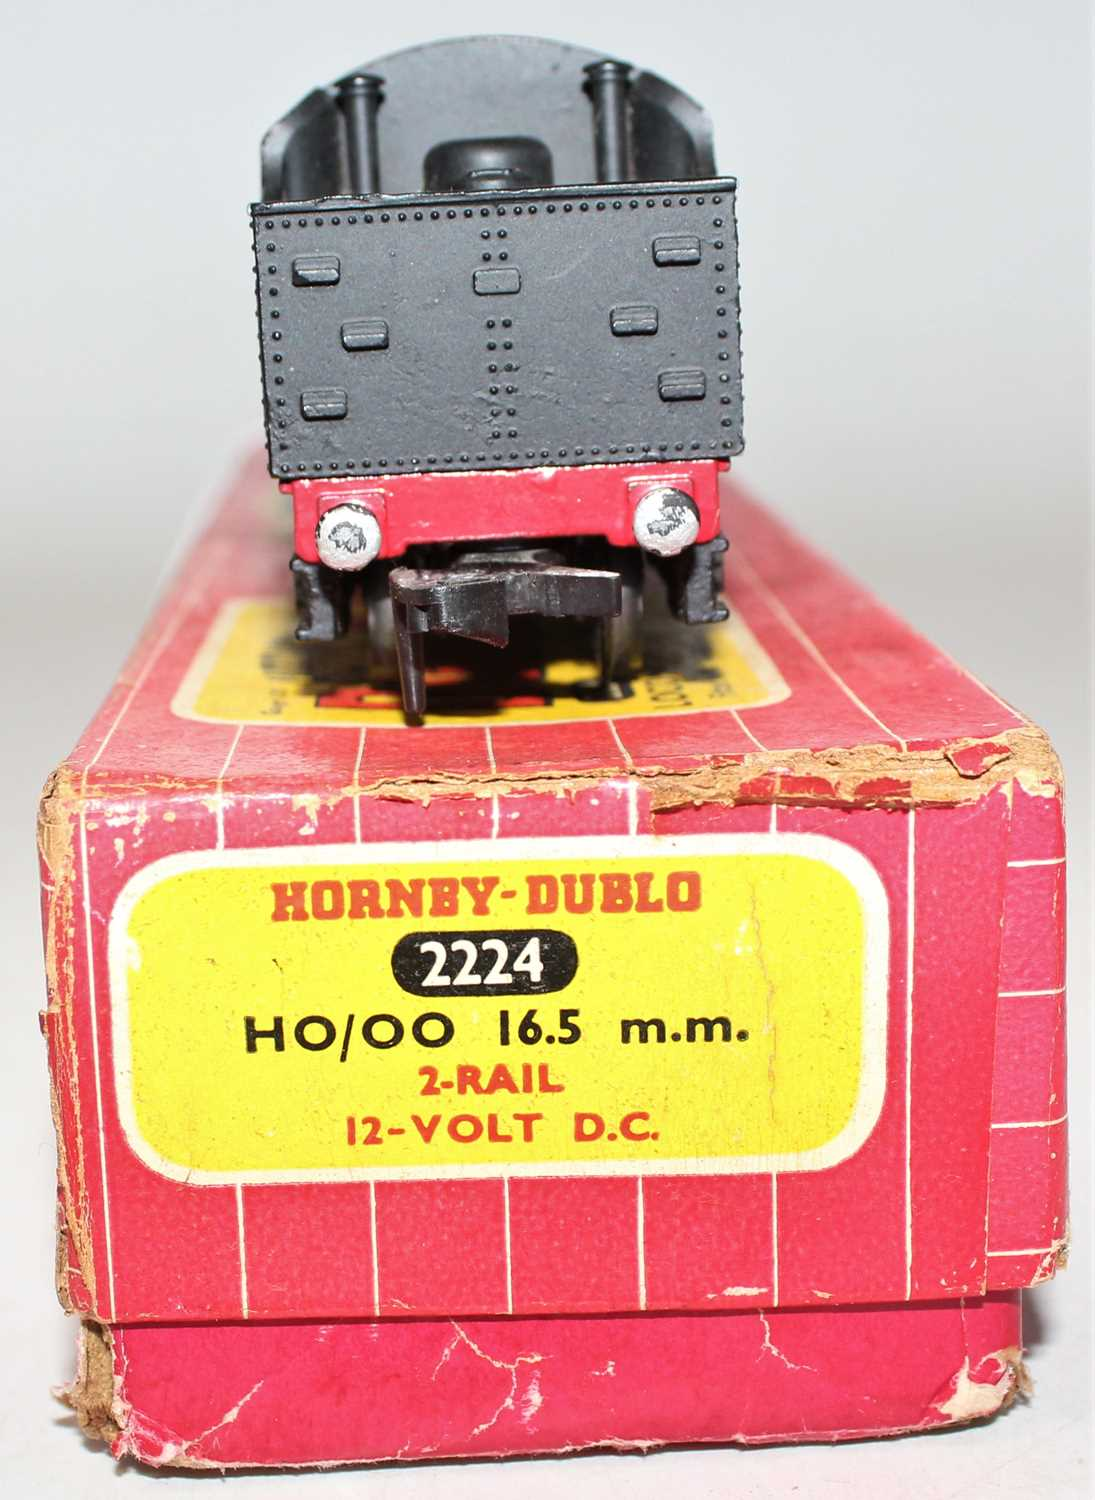 Hornby Dublo 2224 2-rail locomotive and tender 2-8-0 8F freight locomotive, BR 48073, ringfield - Image 4 of 4